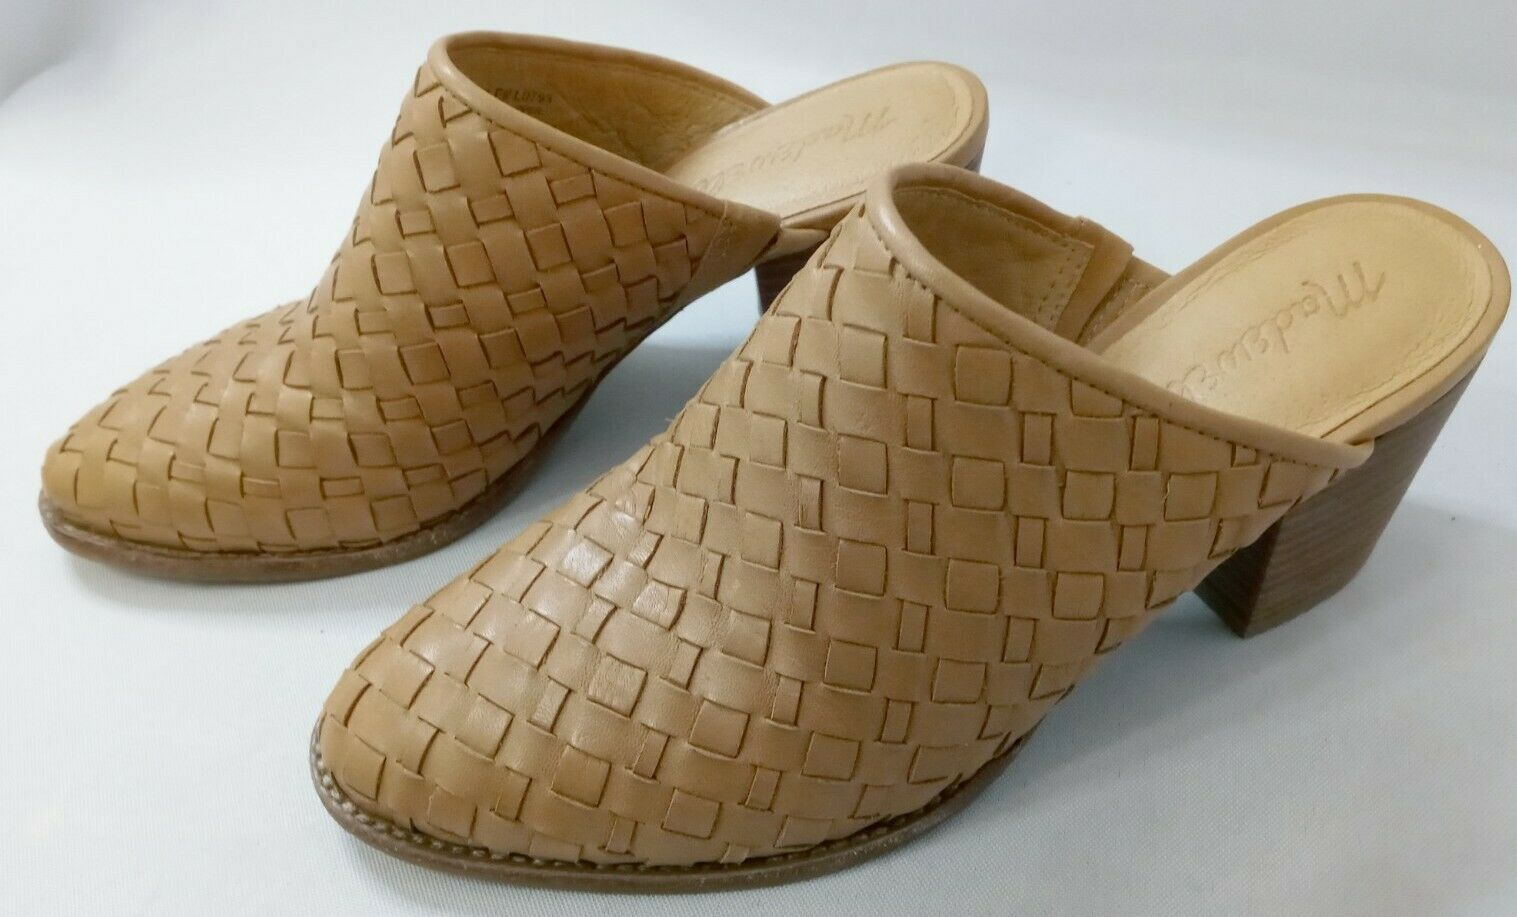 MADEWELL - The Harper Mule In Woven Leather - Tan Womens Size 6 - VERY NICE!